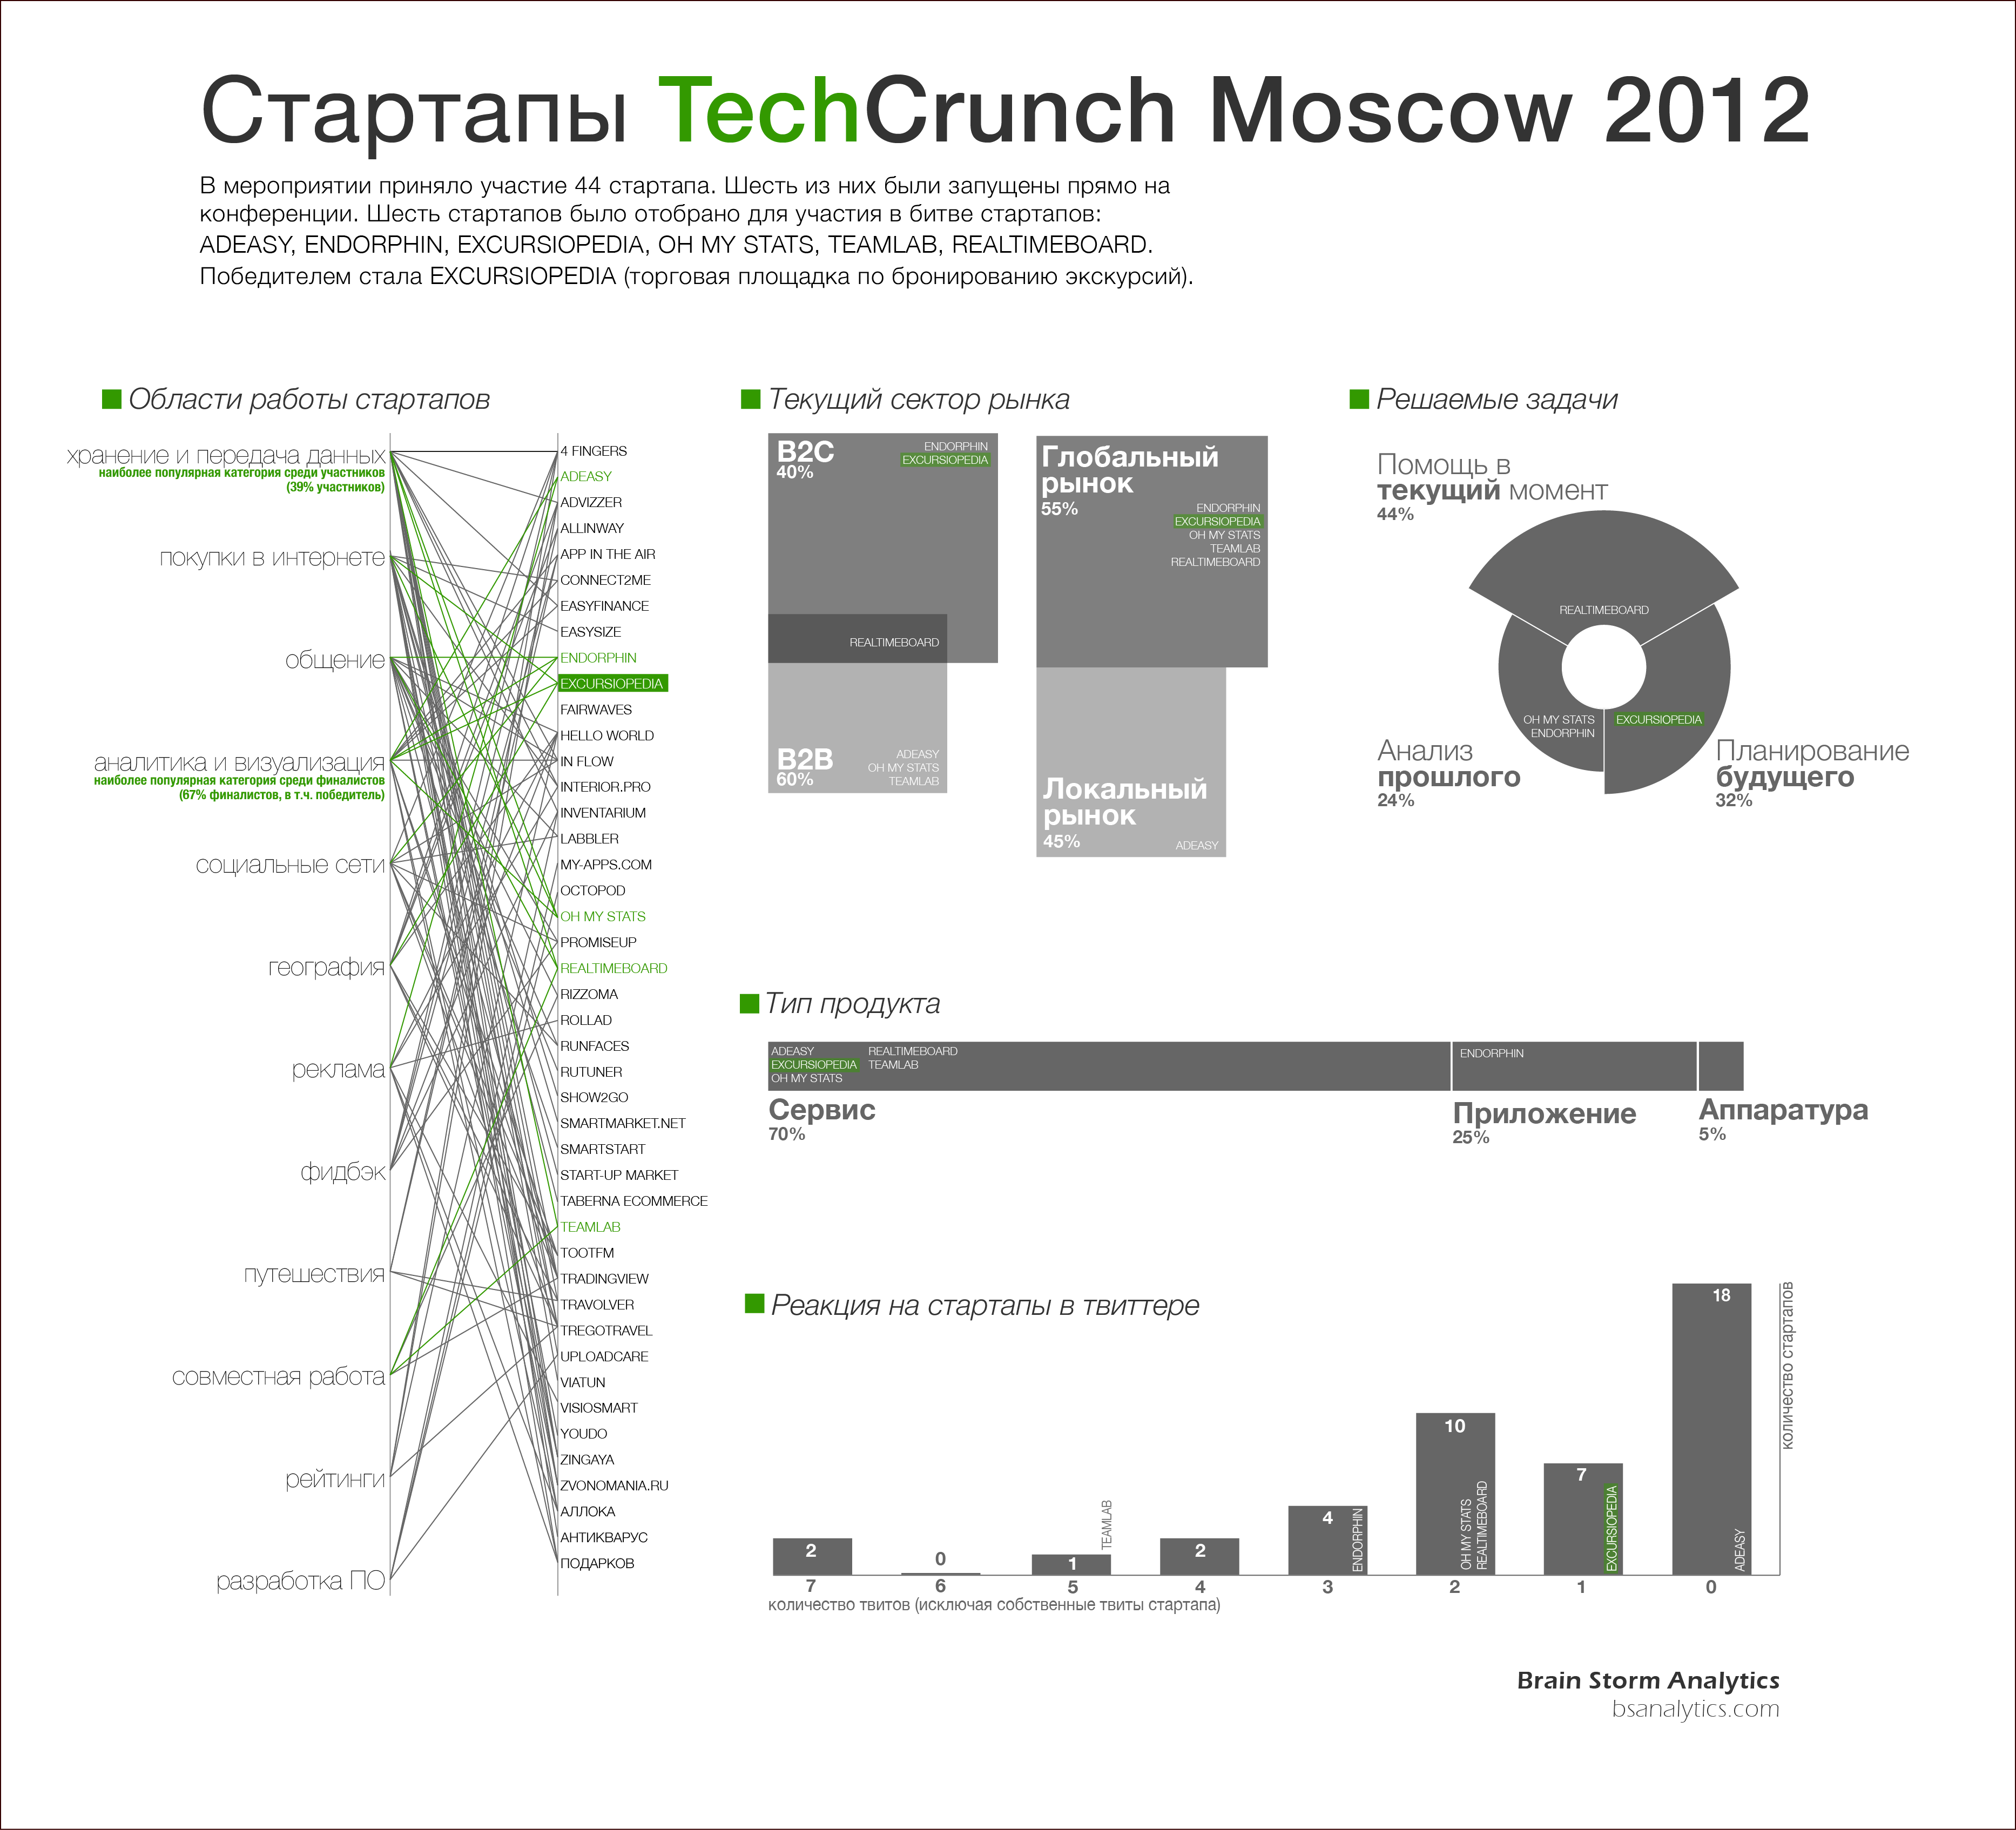 TechCrunchMoscow_RU